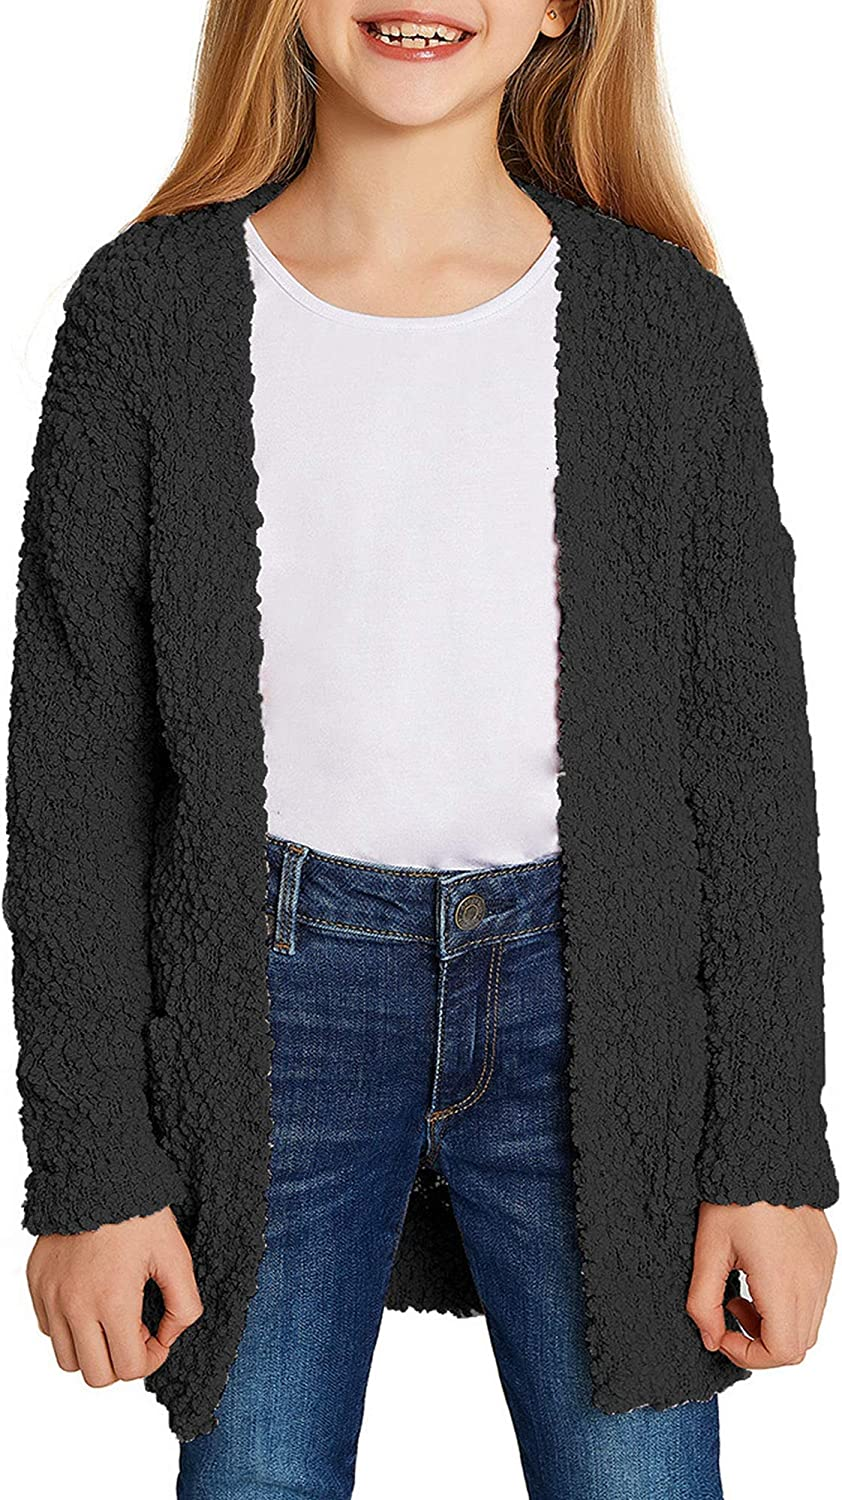 LookbookStore Girls Open Front Knit Cardigan Be super welcome Sweater Luxury Oute Pocket